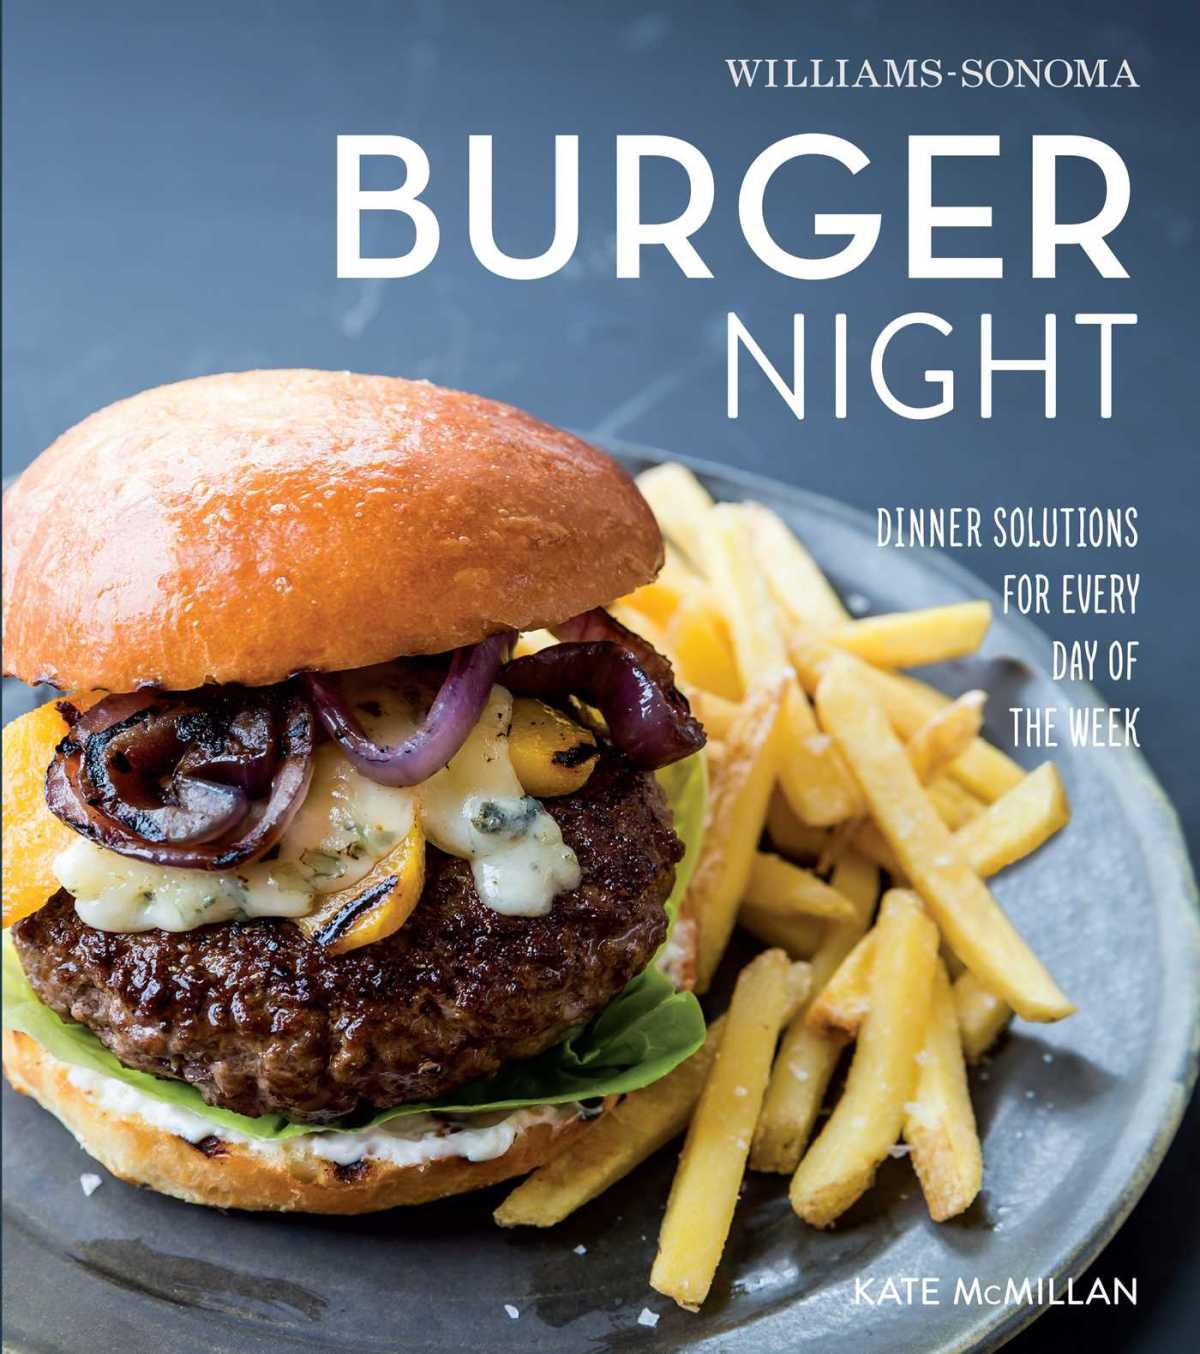 burger-night-(williams-sonoma)-9781616287344_hr